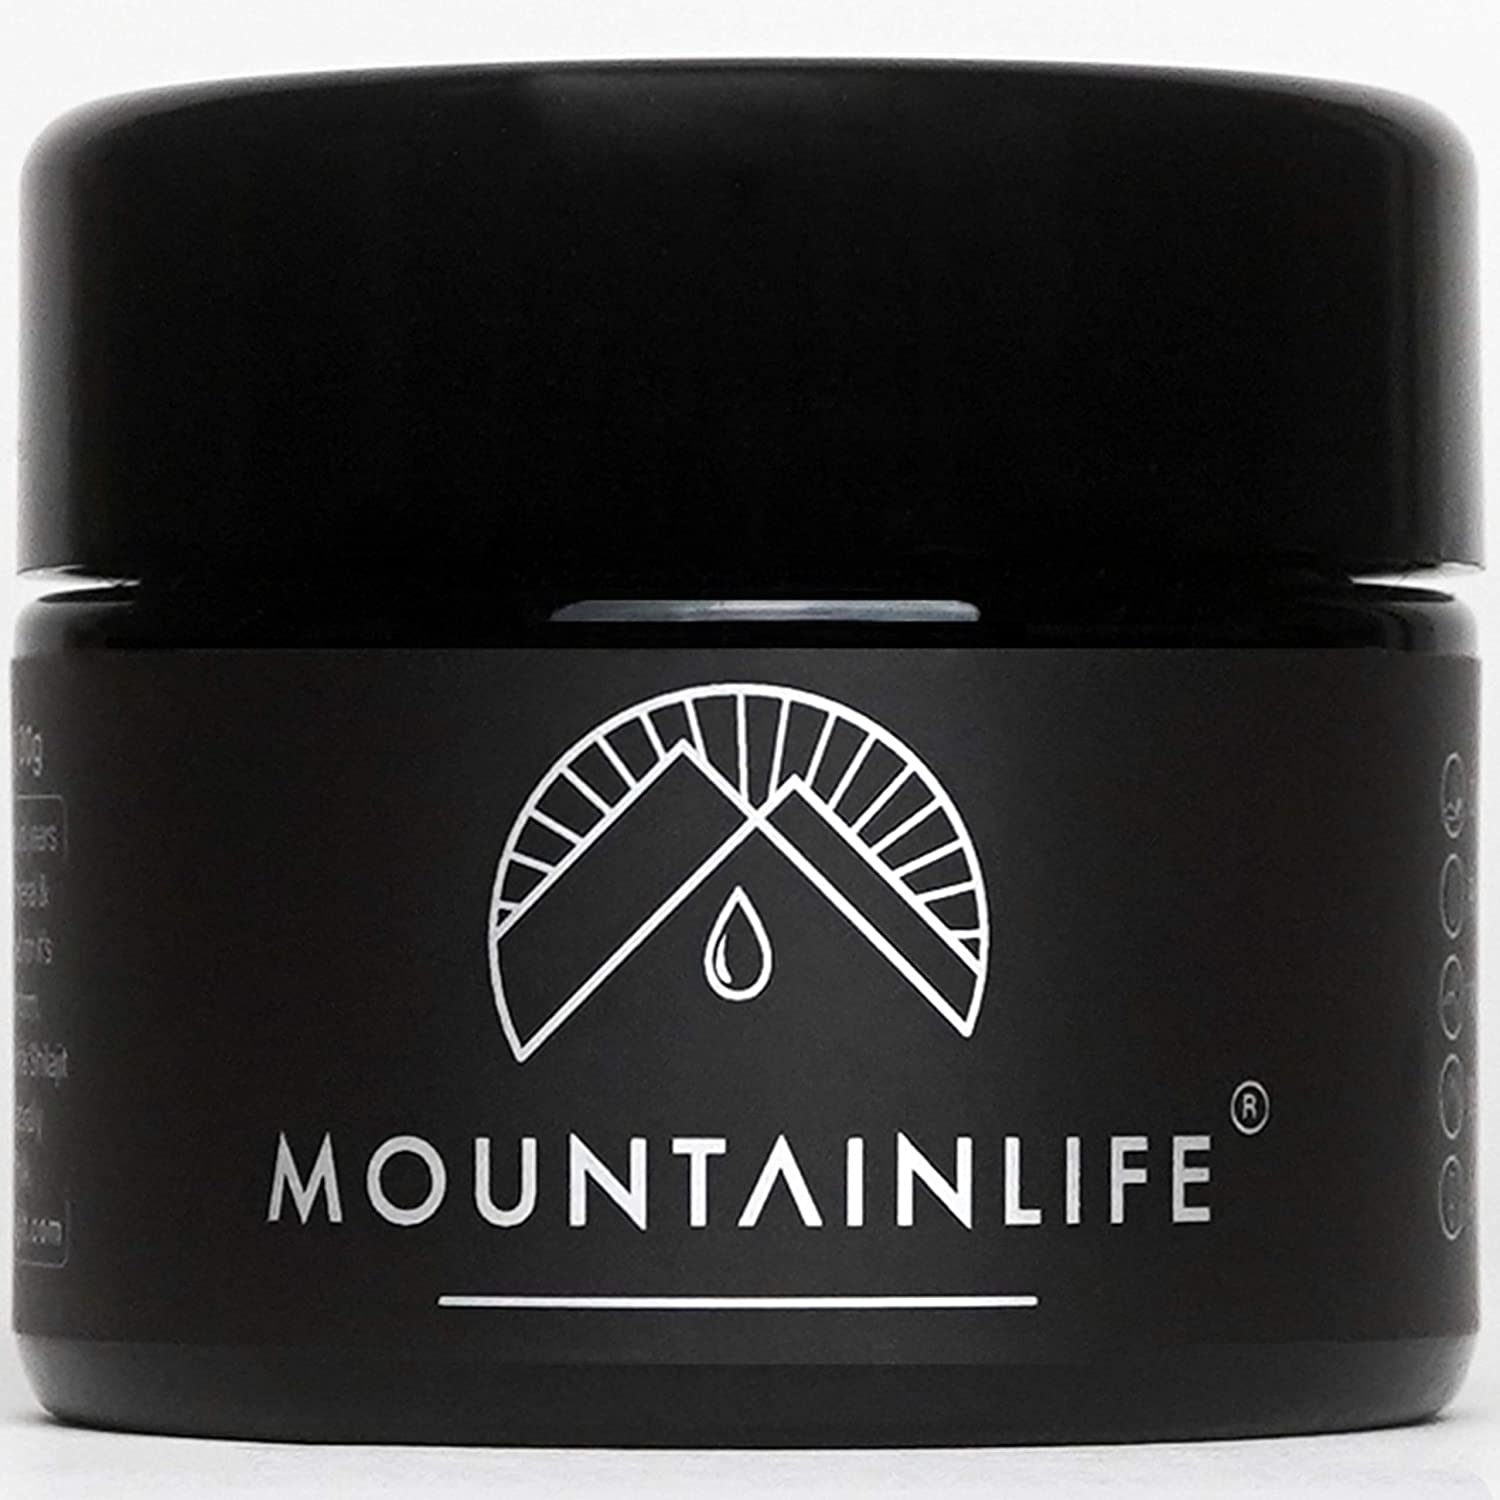 Mountainlife Natural Shilajit Resin | UK Lab Tested | (30g) - 3 Month Supply | Vegan Accredited | Herbal & Mineral Superfood | Miron UV Protected | Rich in Fulvic & Amino Acids, Minerals, Vitamins